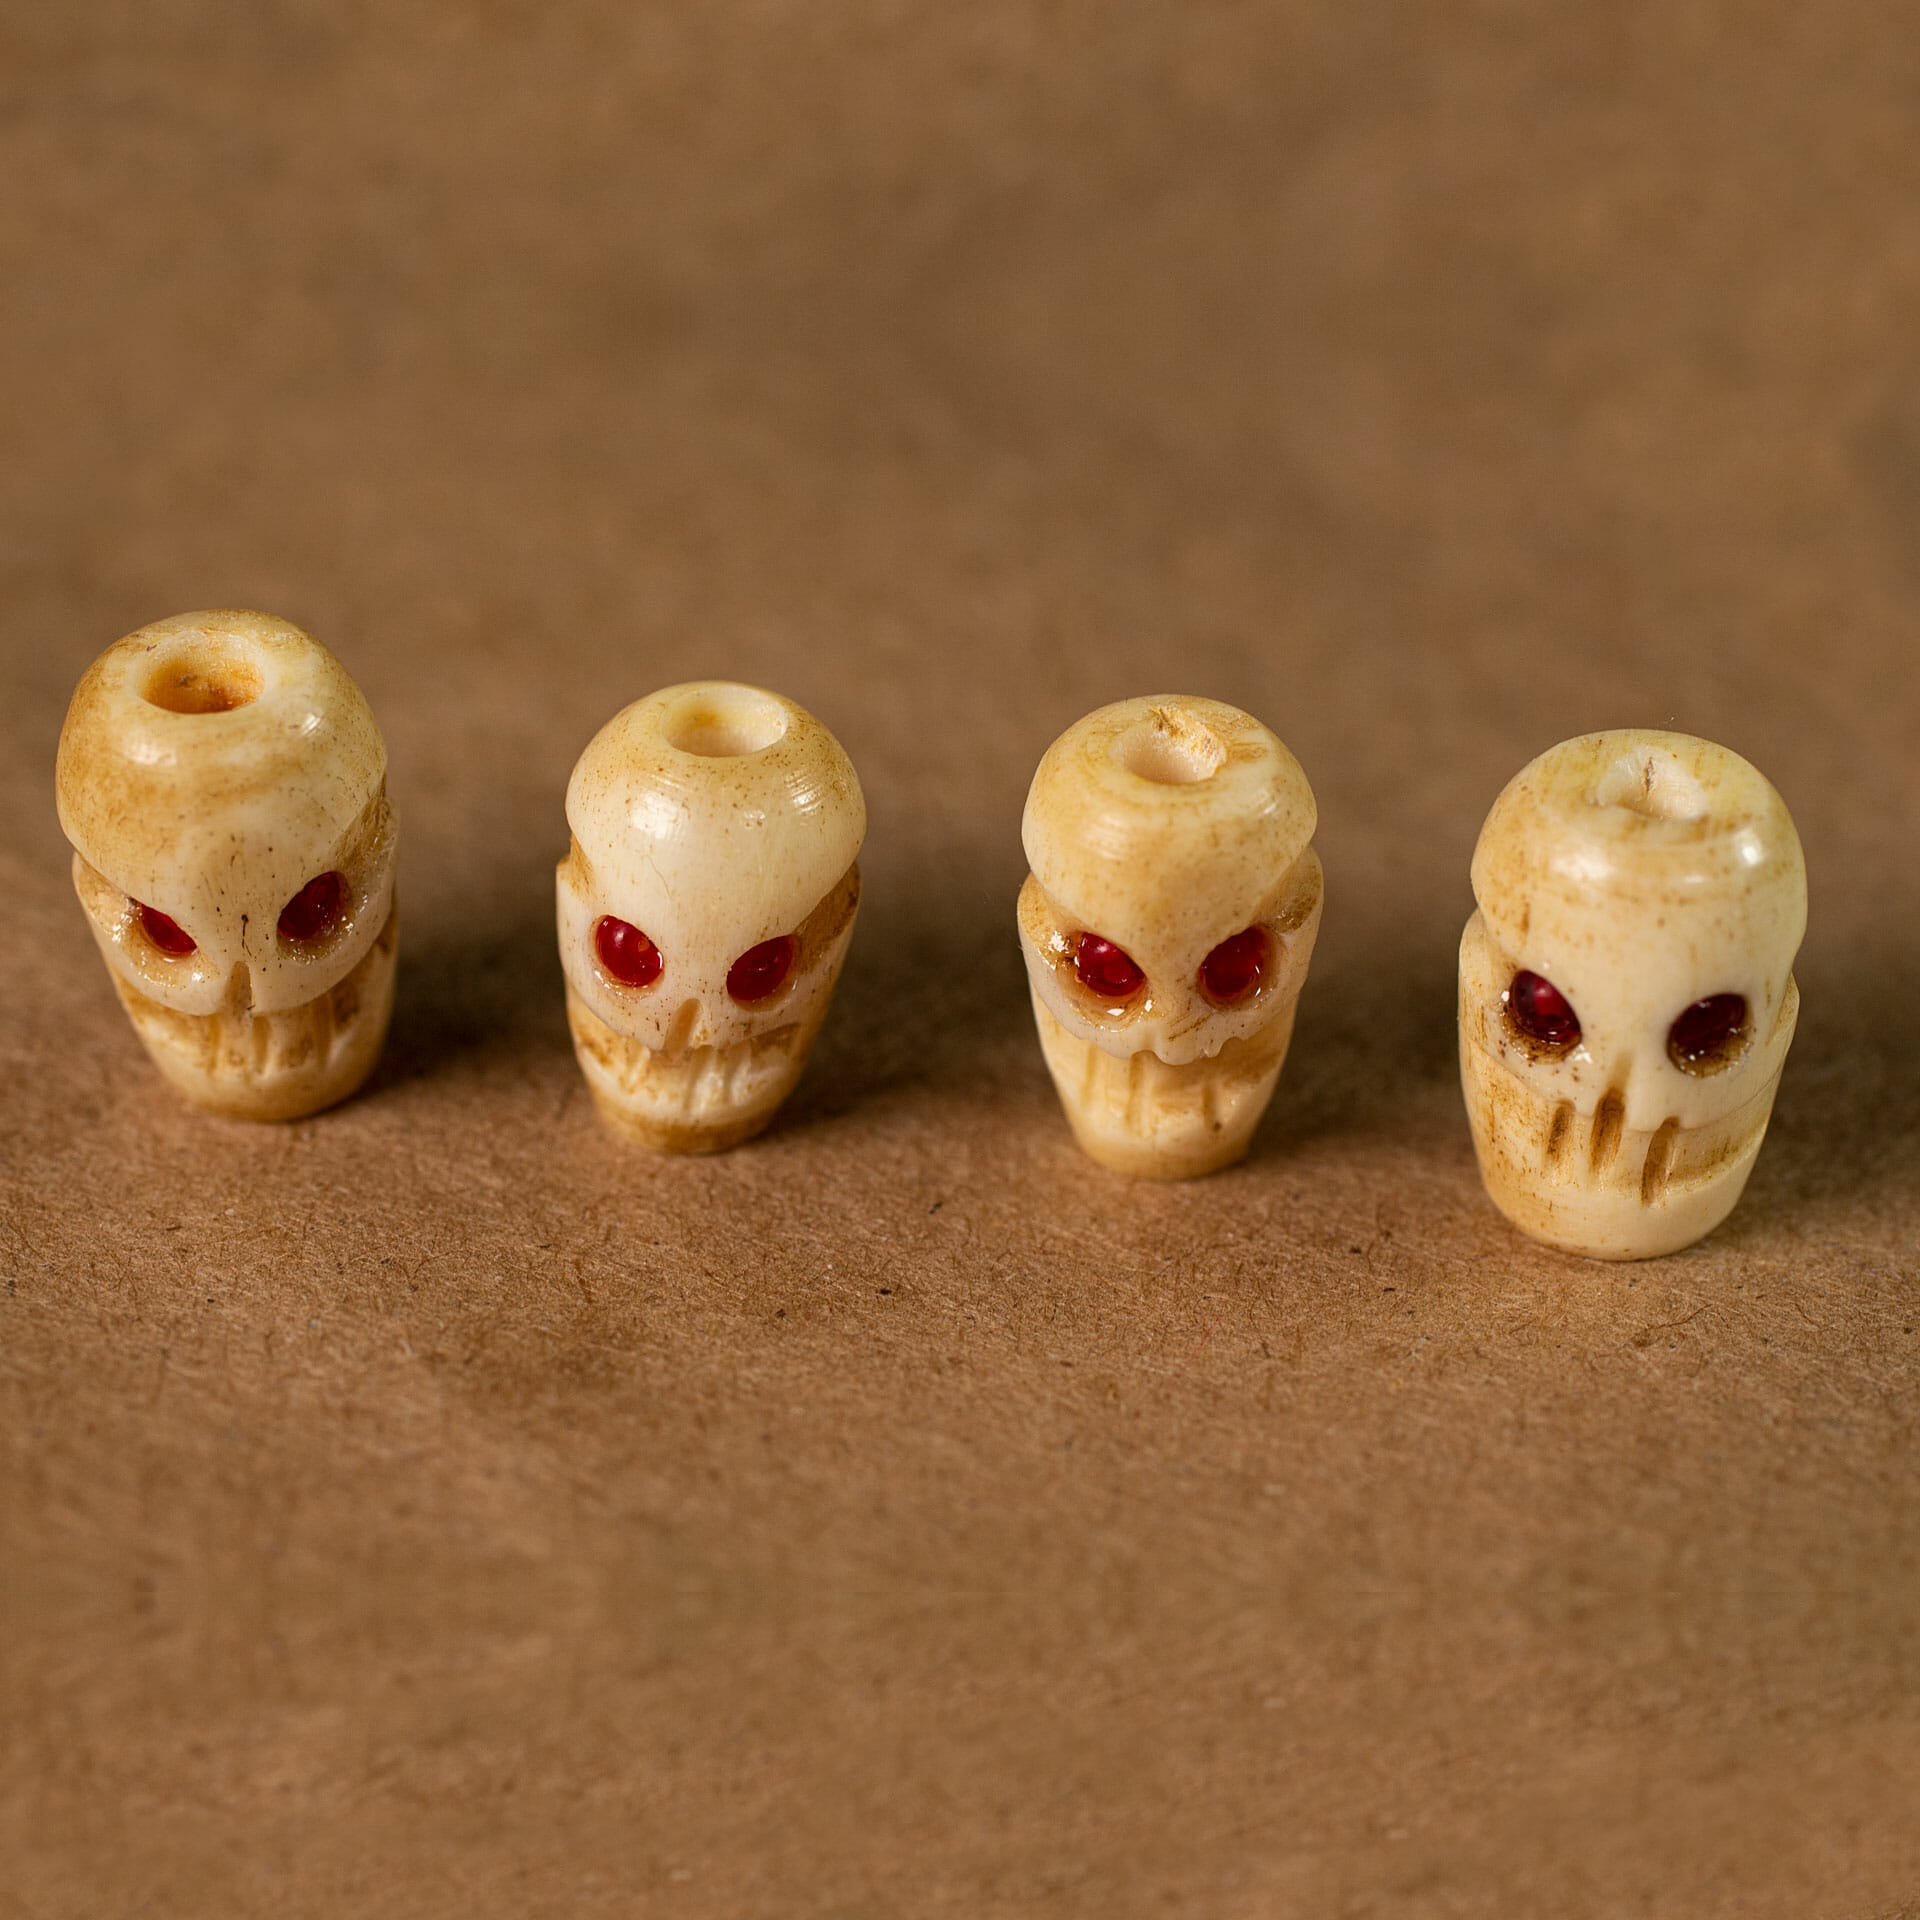 Cow bone skull beads with red seed bead eyes